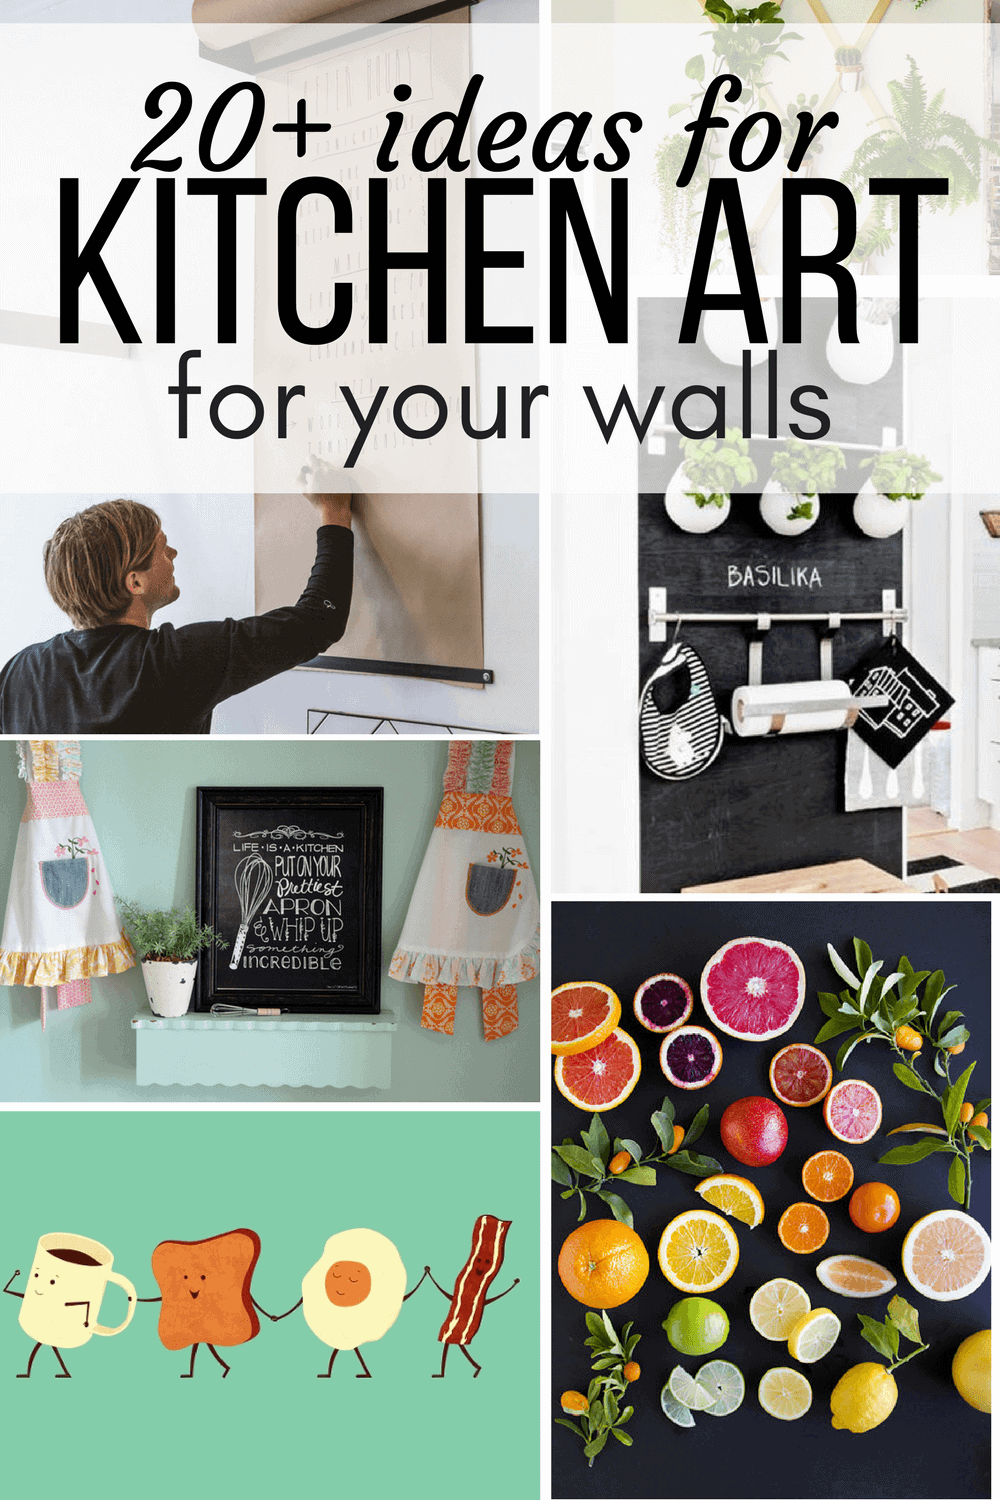 20+ Gorgeous Kitchen Art Ideas You'll - & Renovations on clip art for kitchen, art ideas for your room, art ideas for walls, art ideas for painting, art ideas crafts, art ideas for pets, art ideas for leather, art ideas for party, art ideas for nursery, art ideas for entryway, art ideas for kindergarten, art ideas for beauty, art ideas for art, art ideas for babies, art ideas for school, art ideas for office, art ideas garden, art ideas for stairs, art ideas for desk, contemporary art for kitchen,